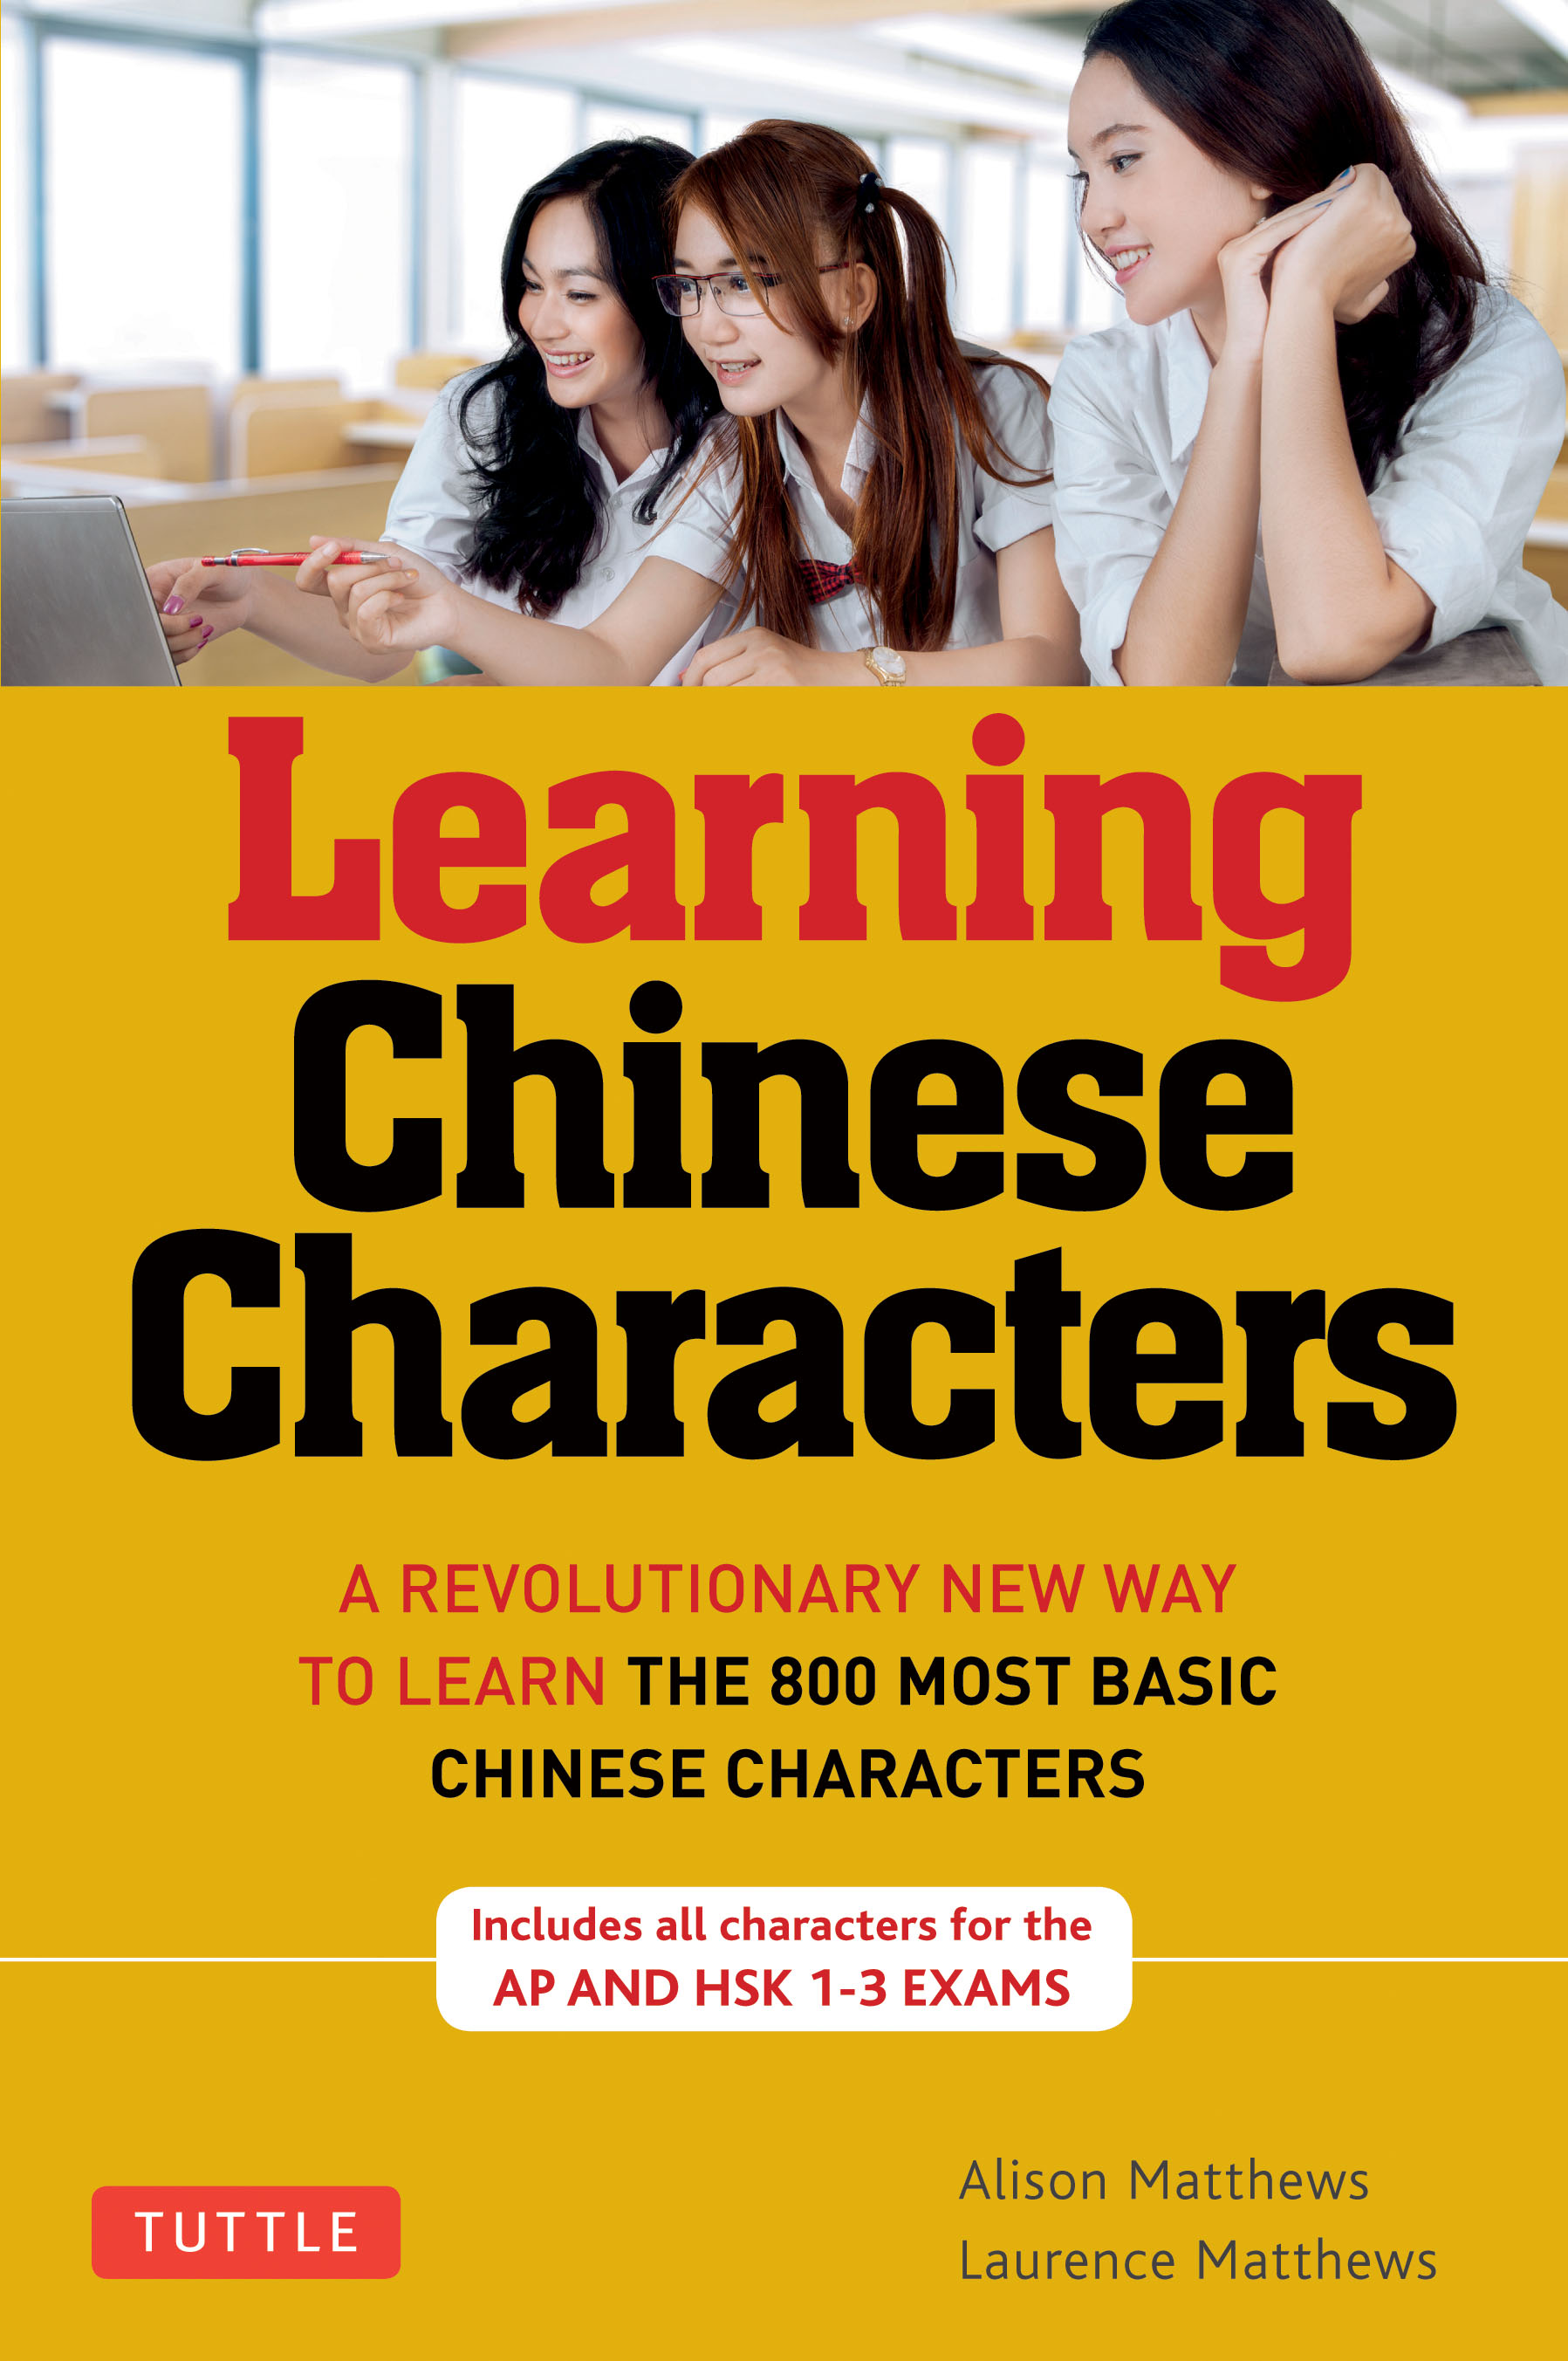 five essential tips for you learning mandairn Chinese! |Learn Chinese Characters